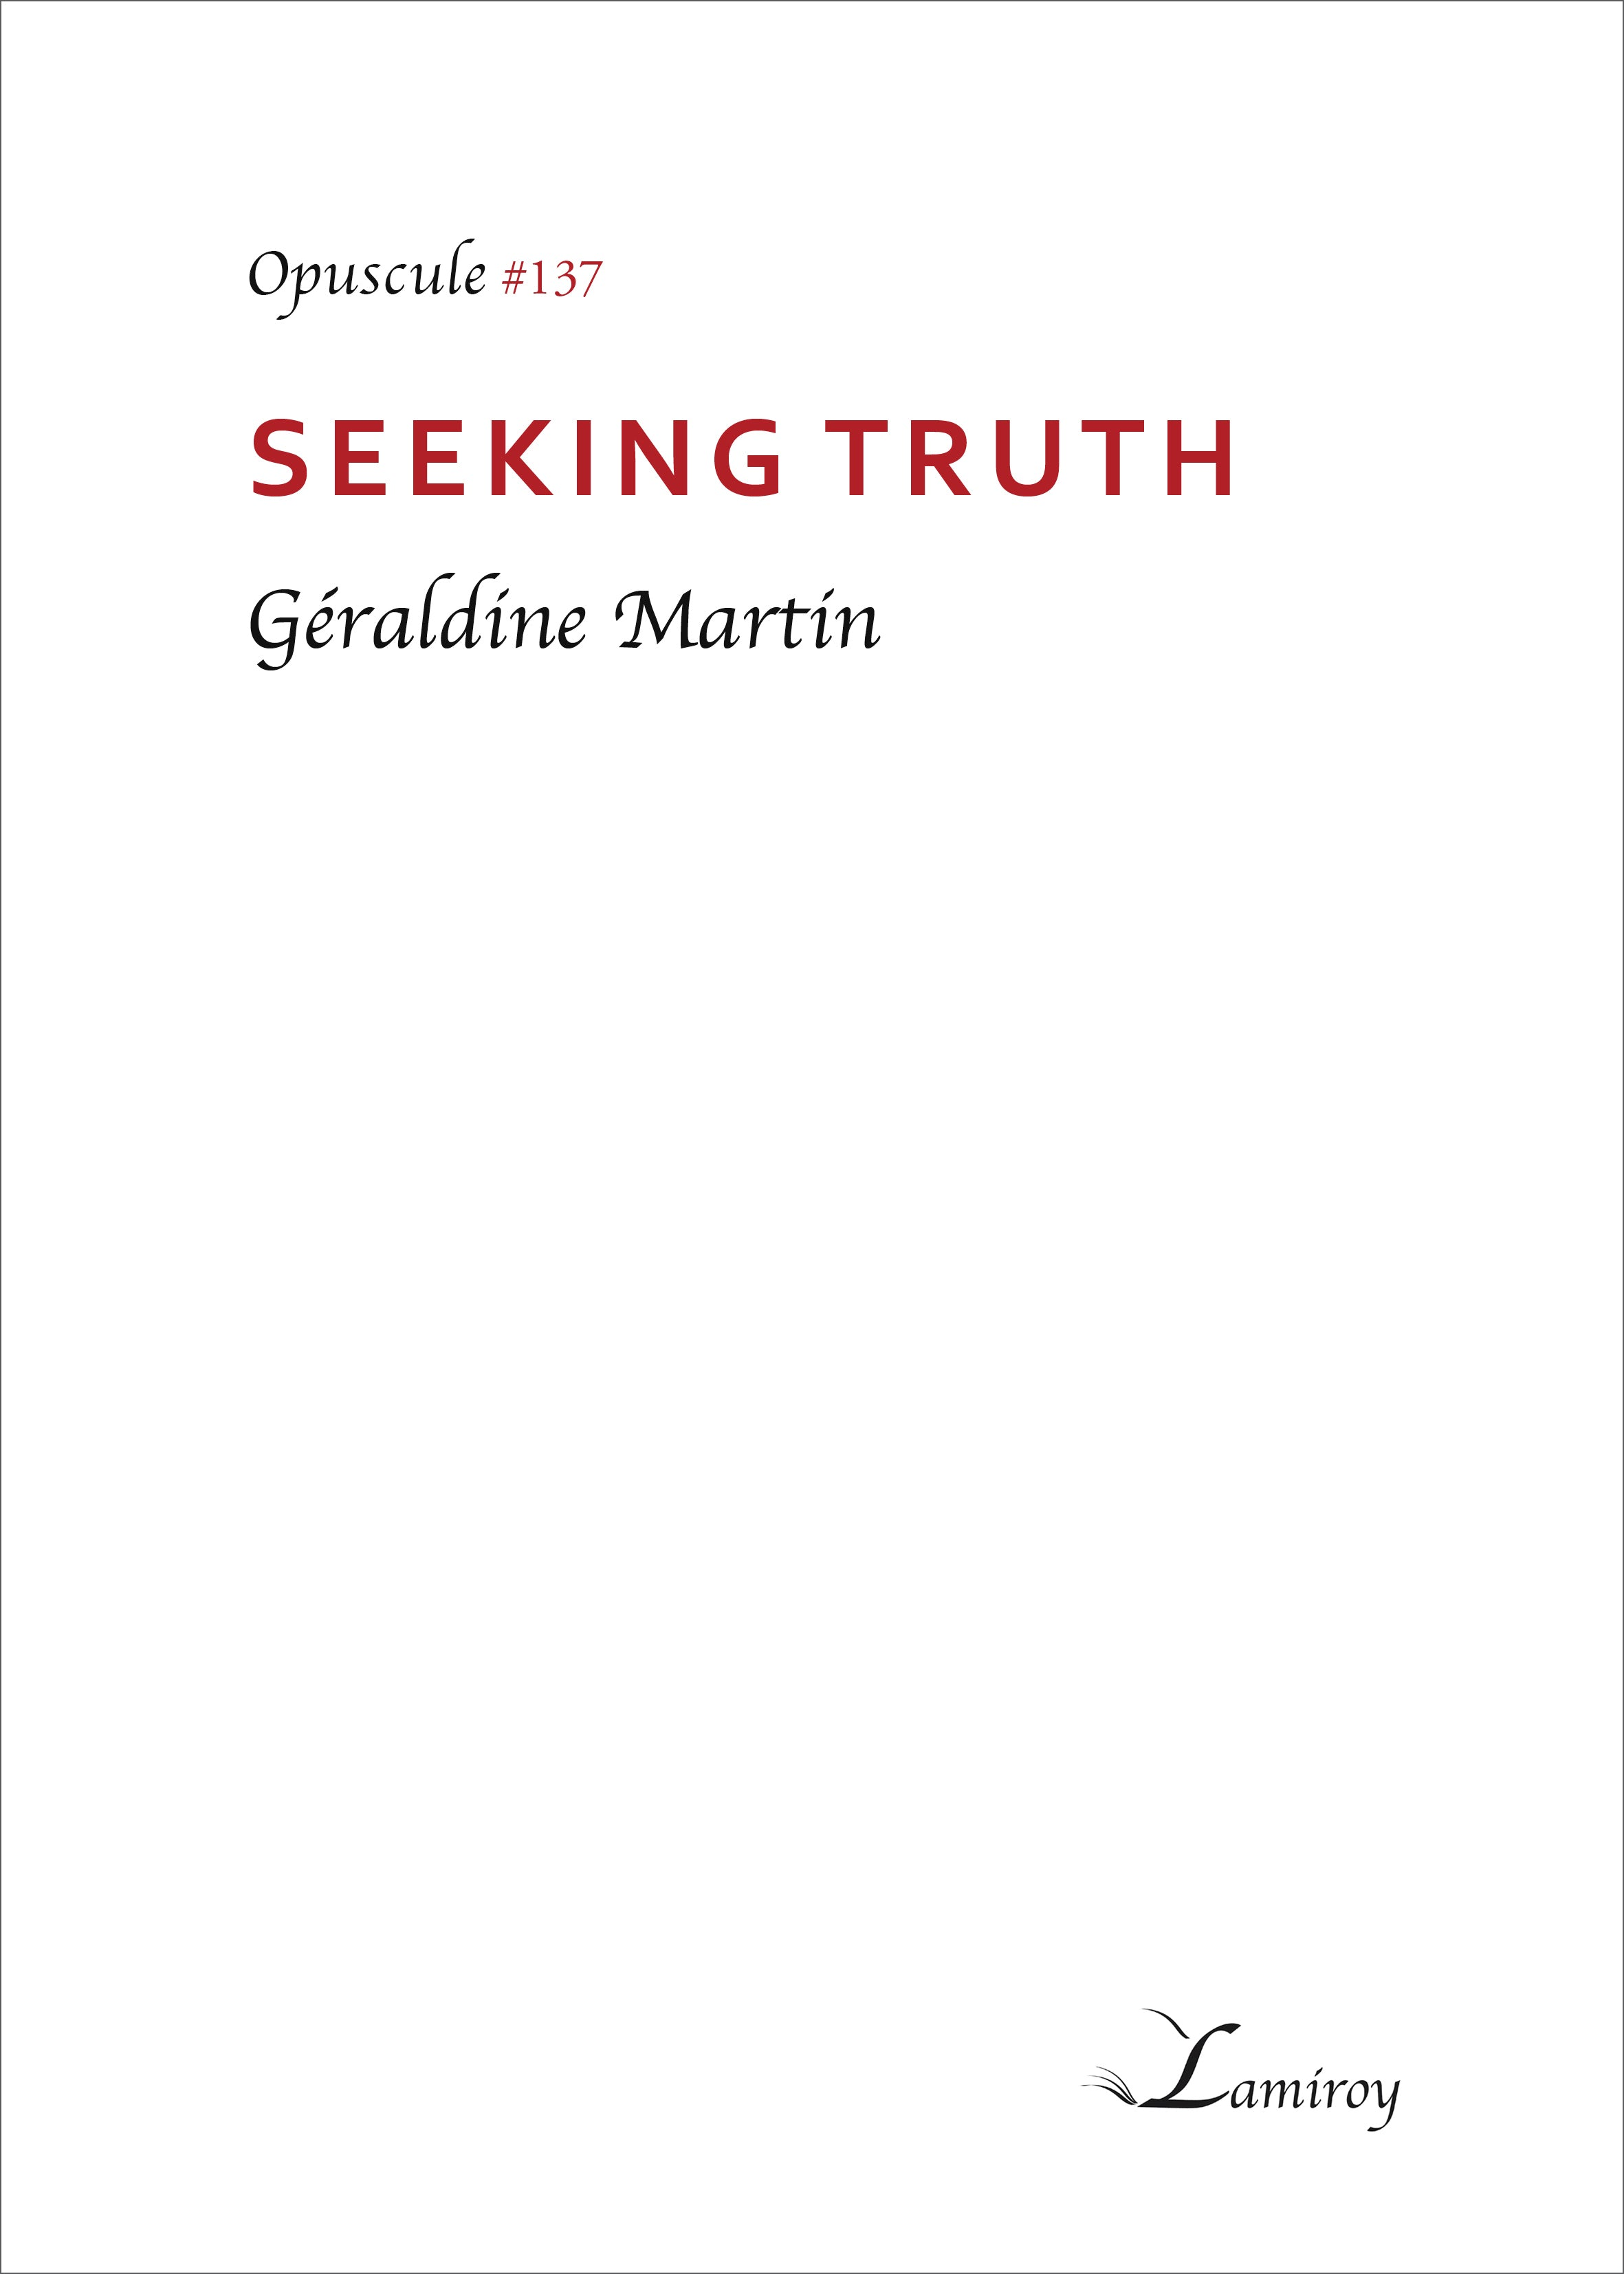 Seeking truth #137